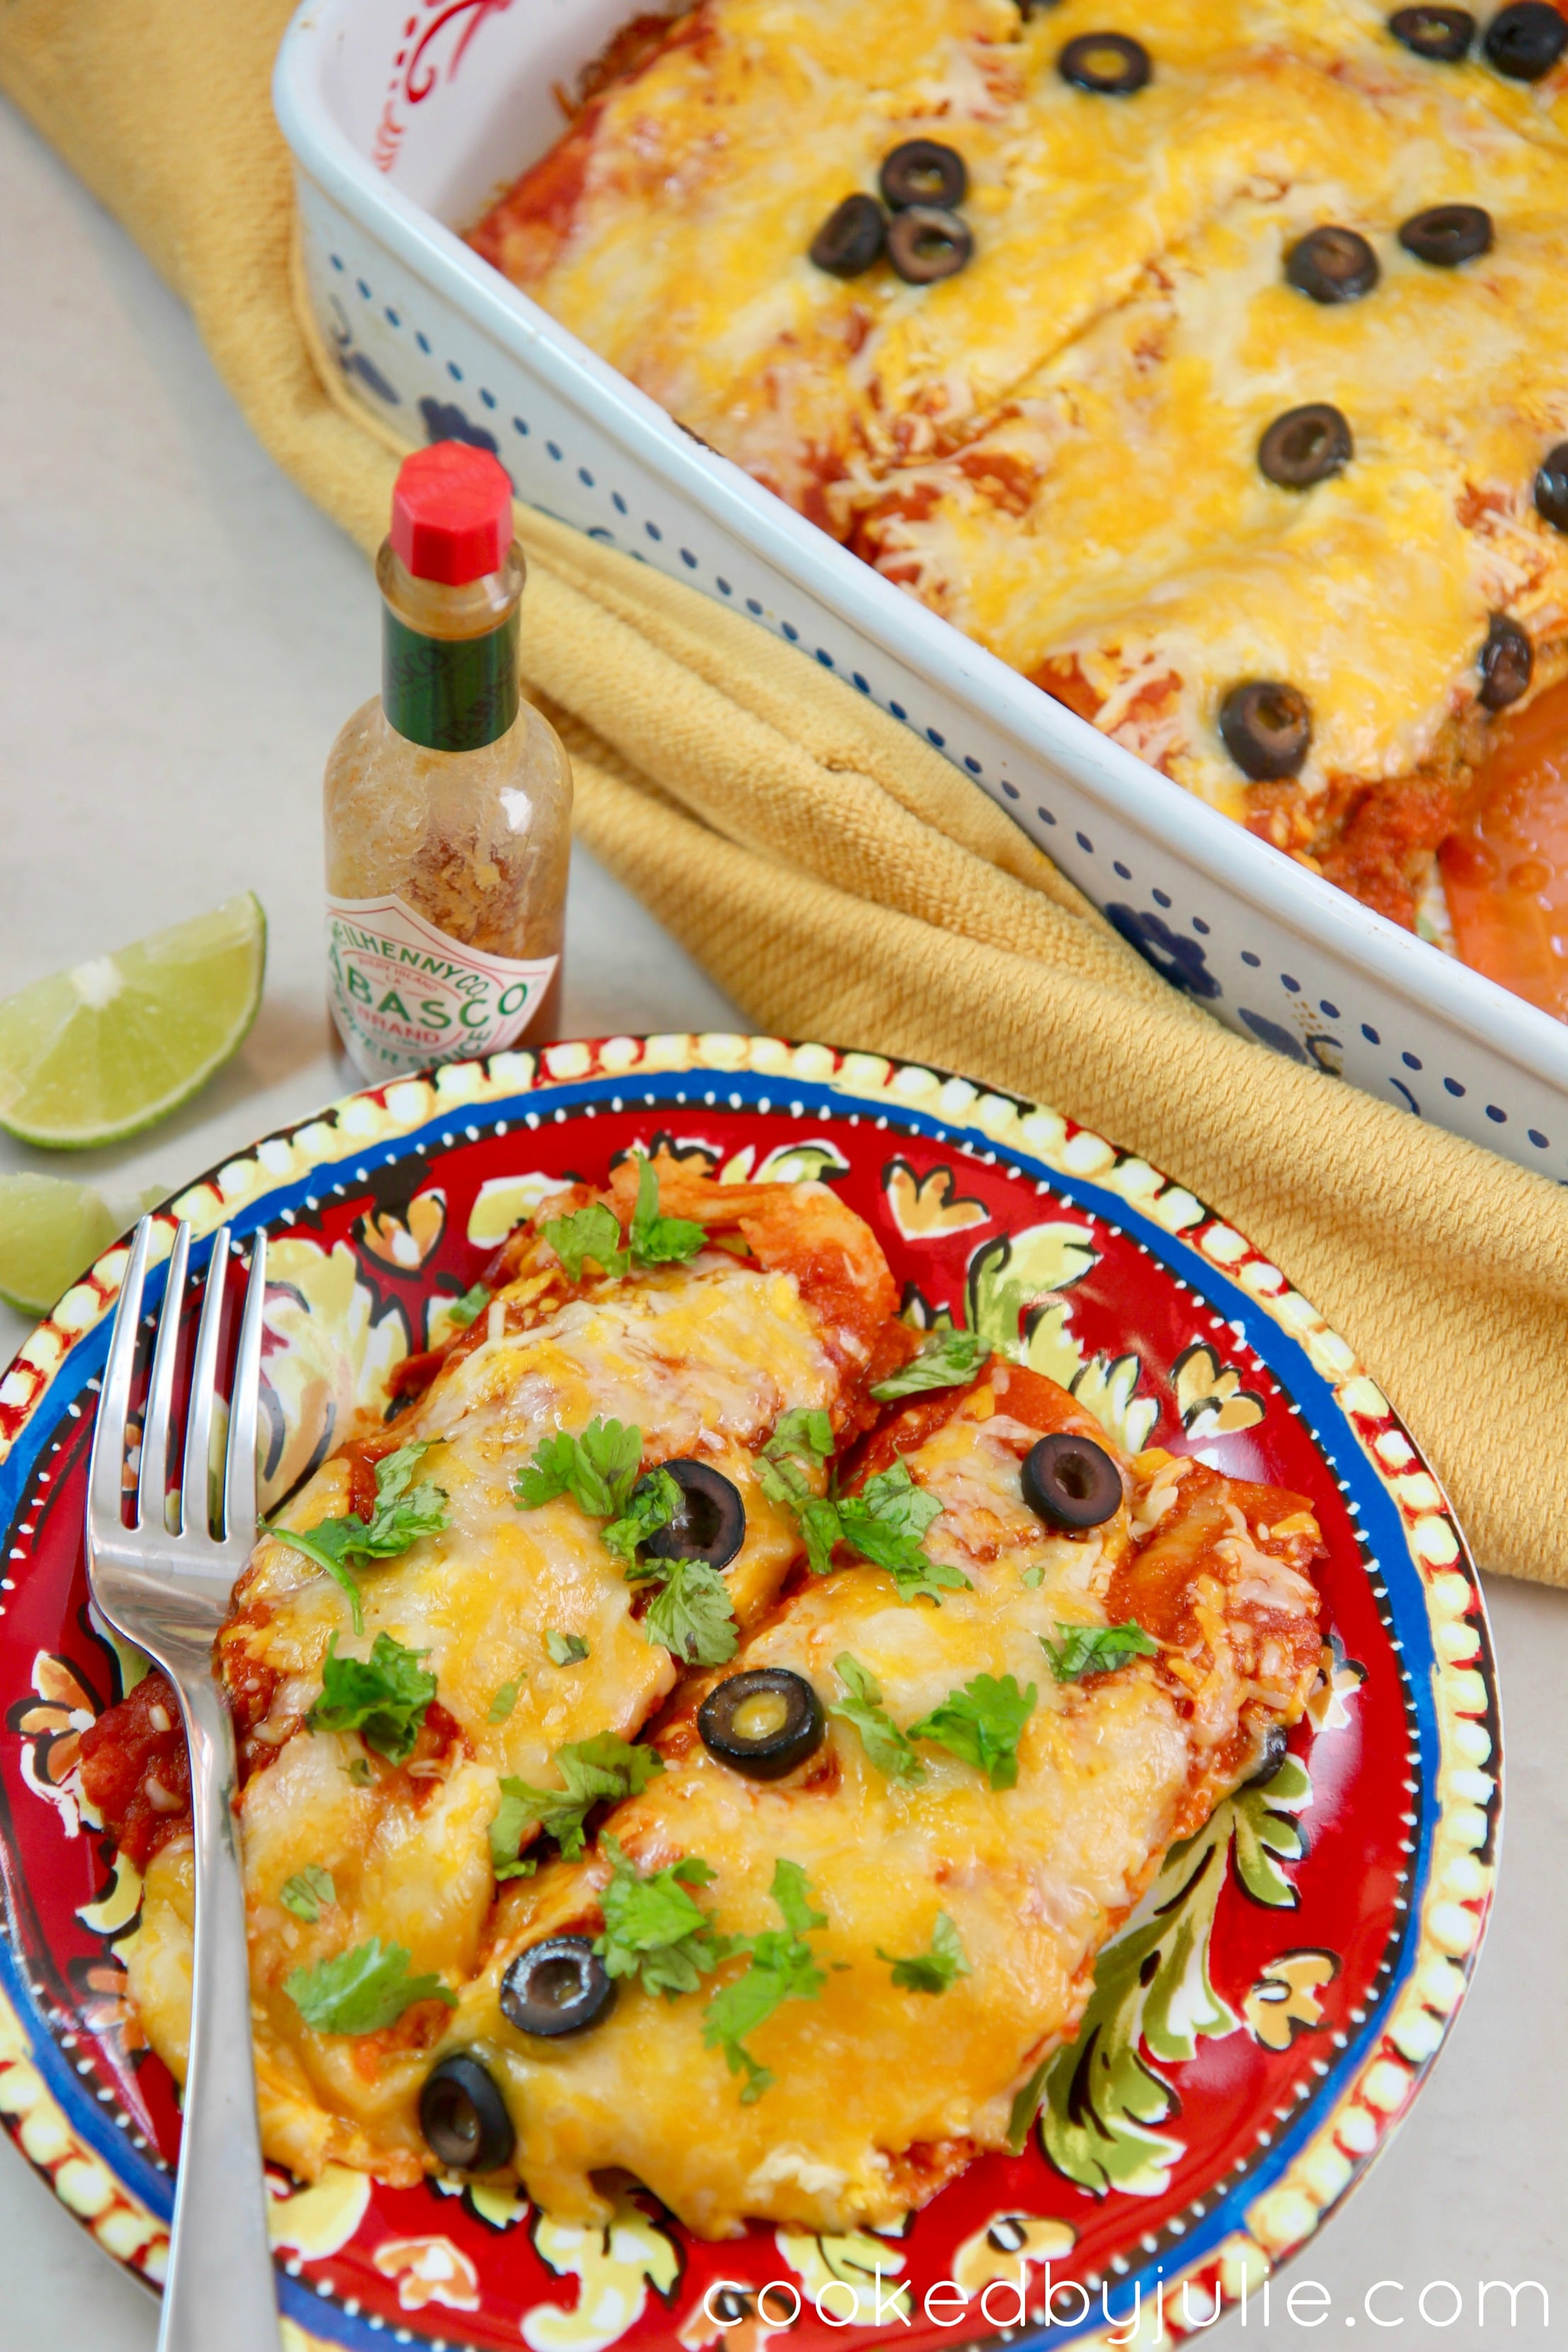 These cheesy beef enchiladas are the perfect party meal. Top with some hot sauce and lime